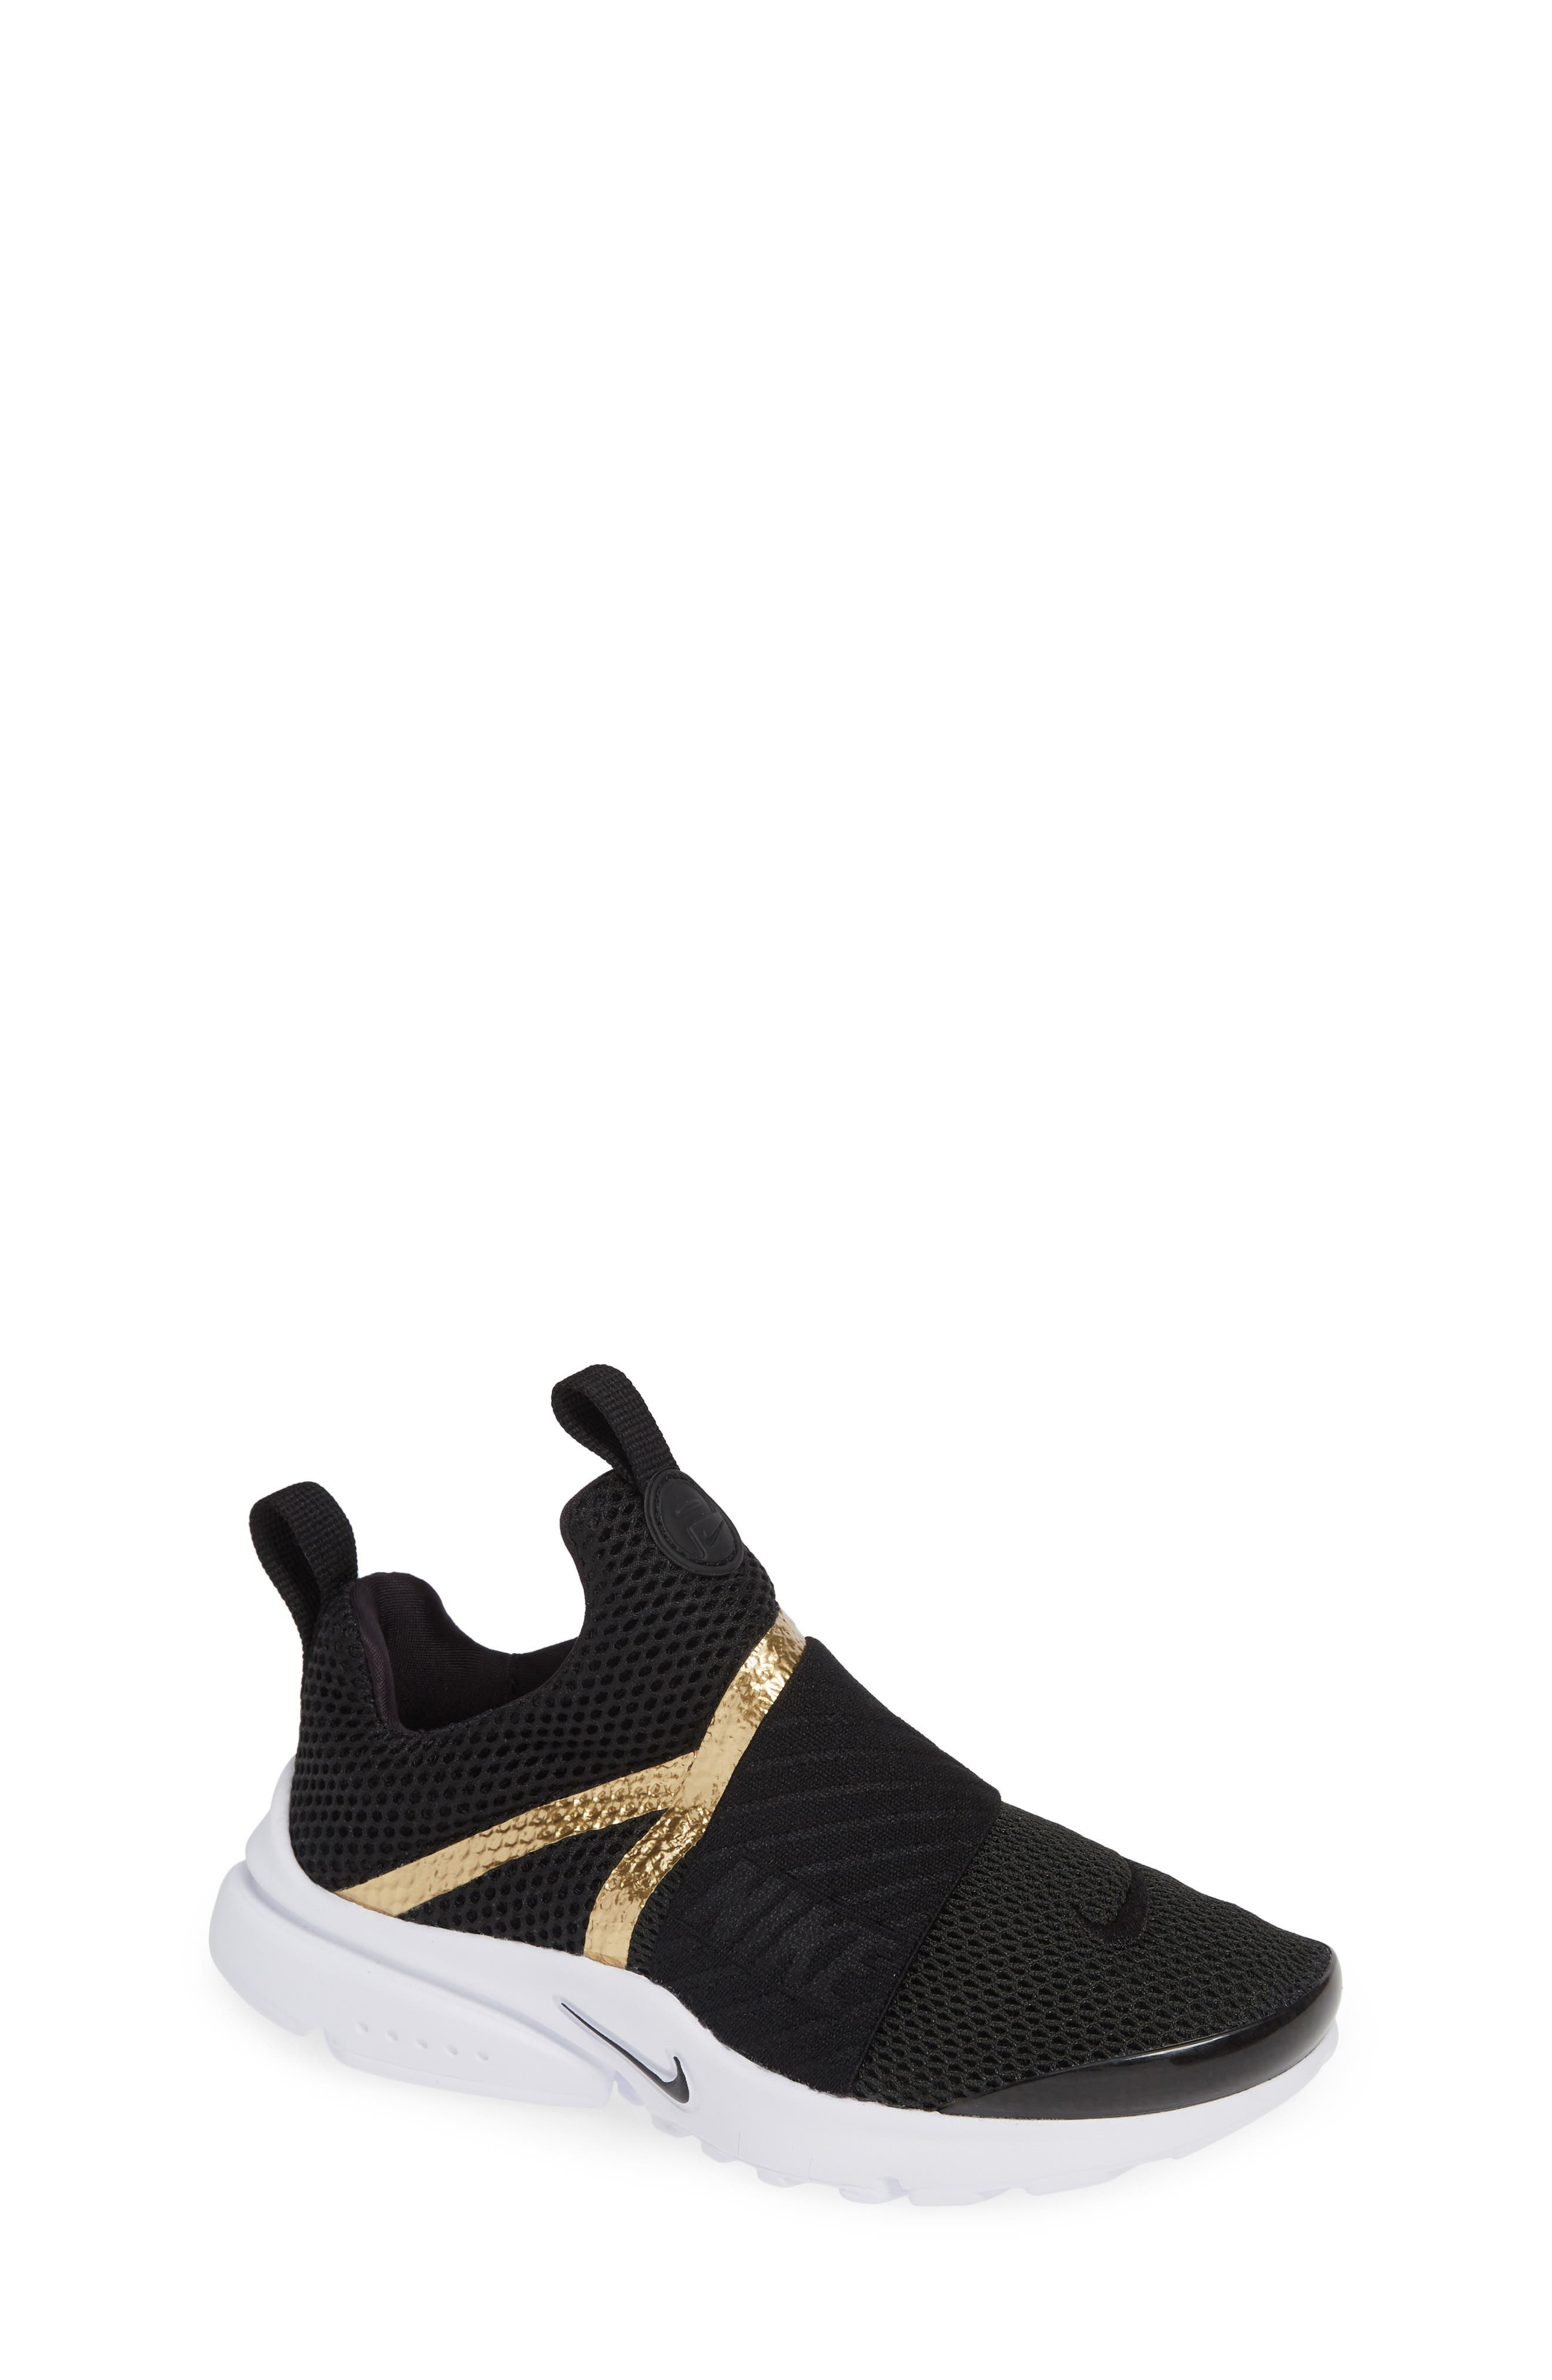 Presto Extreme Sneaker,                             Main thumbnail 1, color,                             BLACK/ METALLIC GOLD/ WHITE